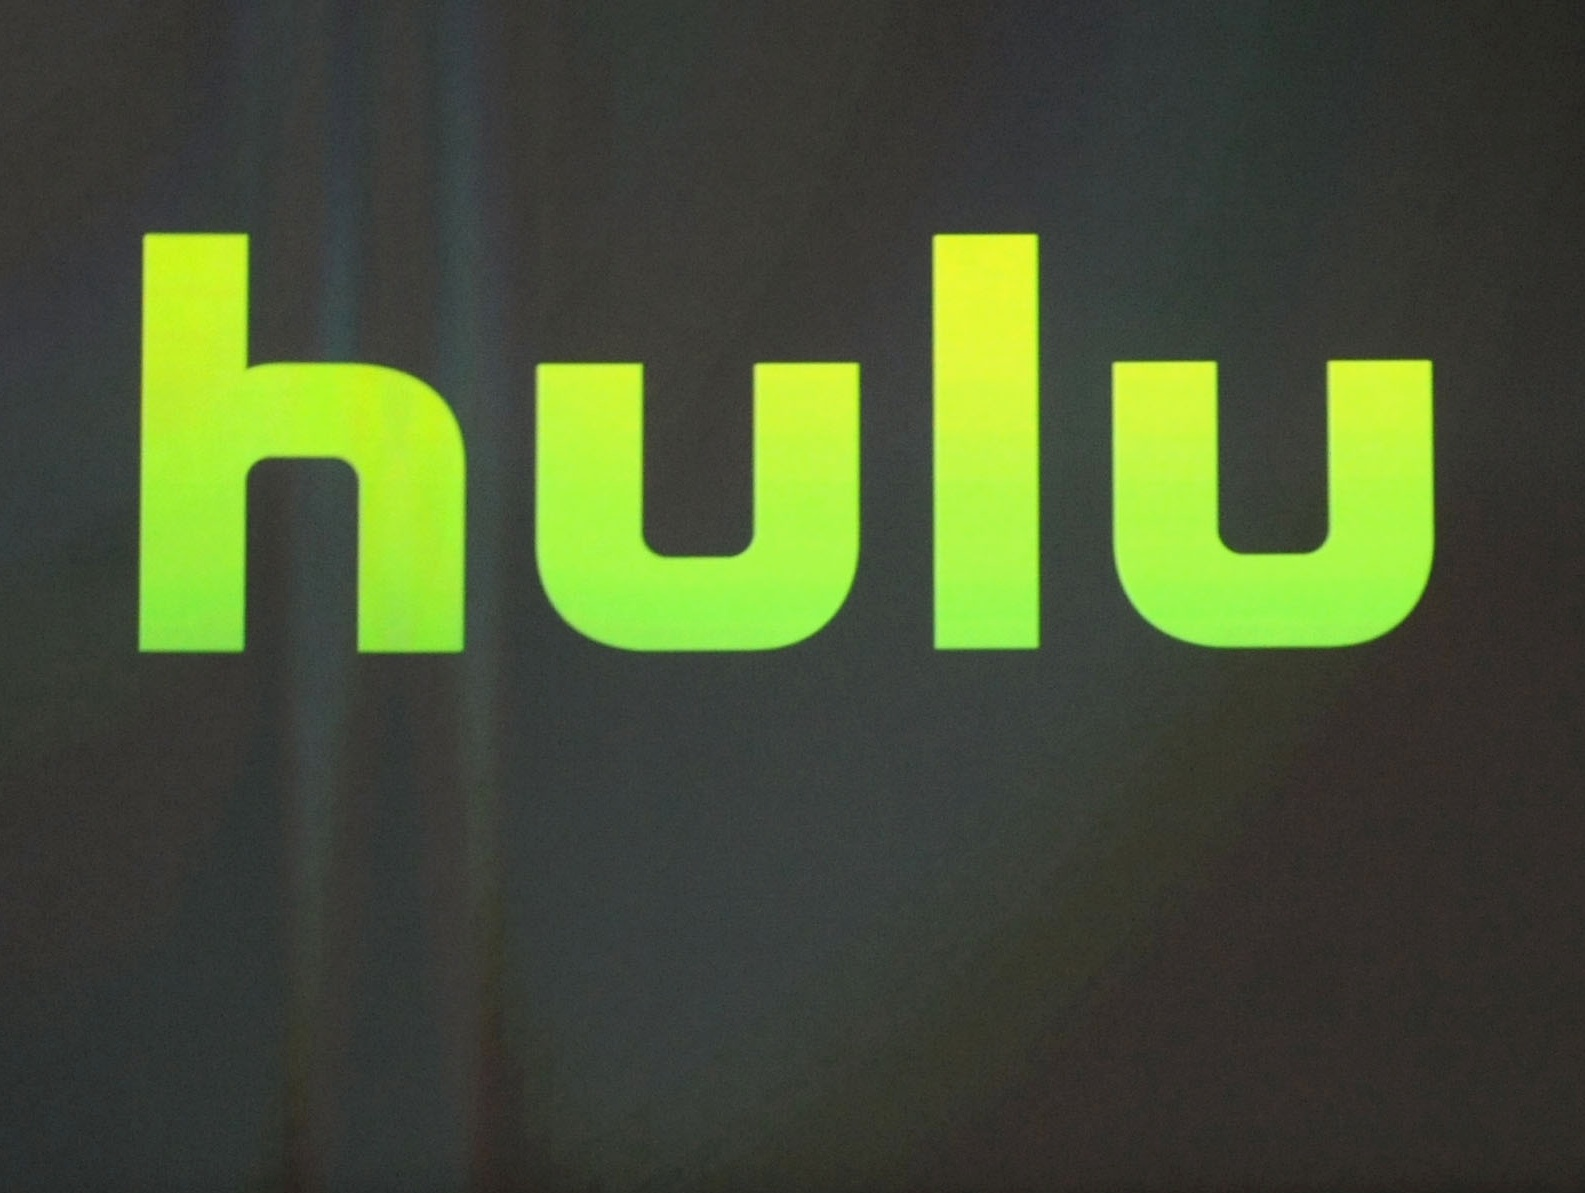 Hulu adds CBS content to live streaming lineup   SmartBrief